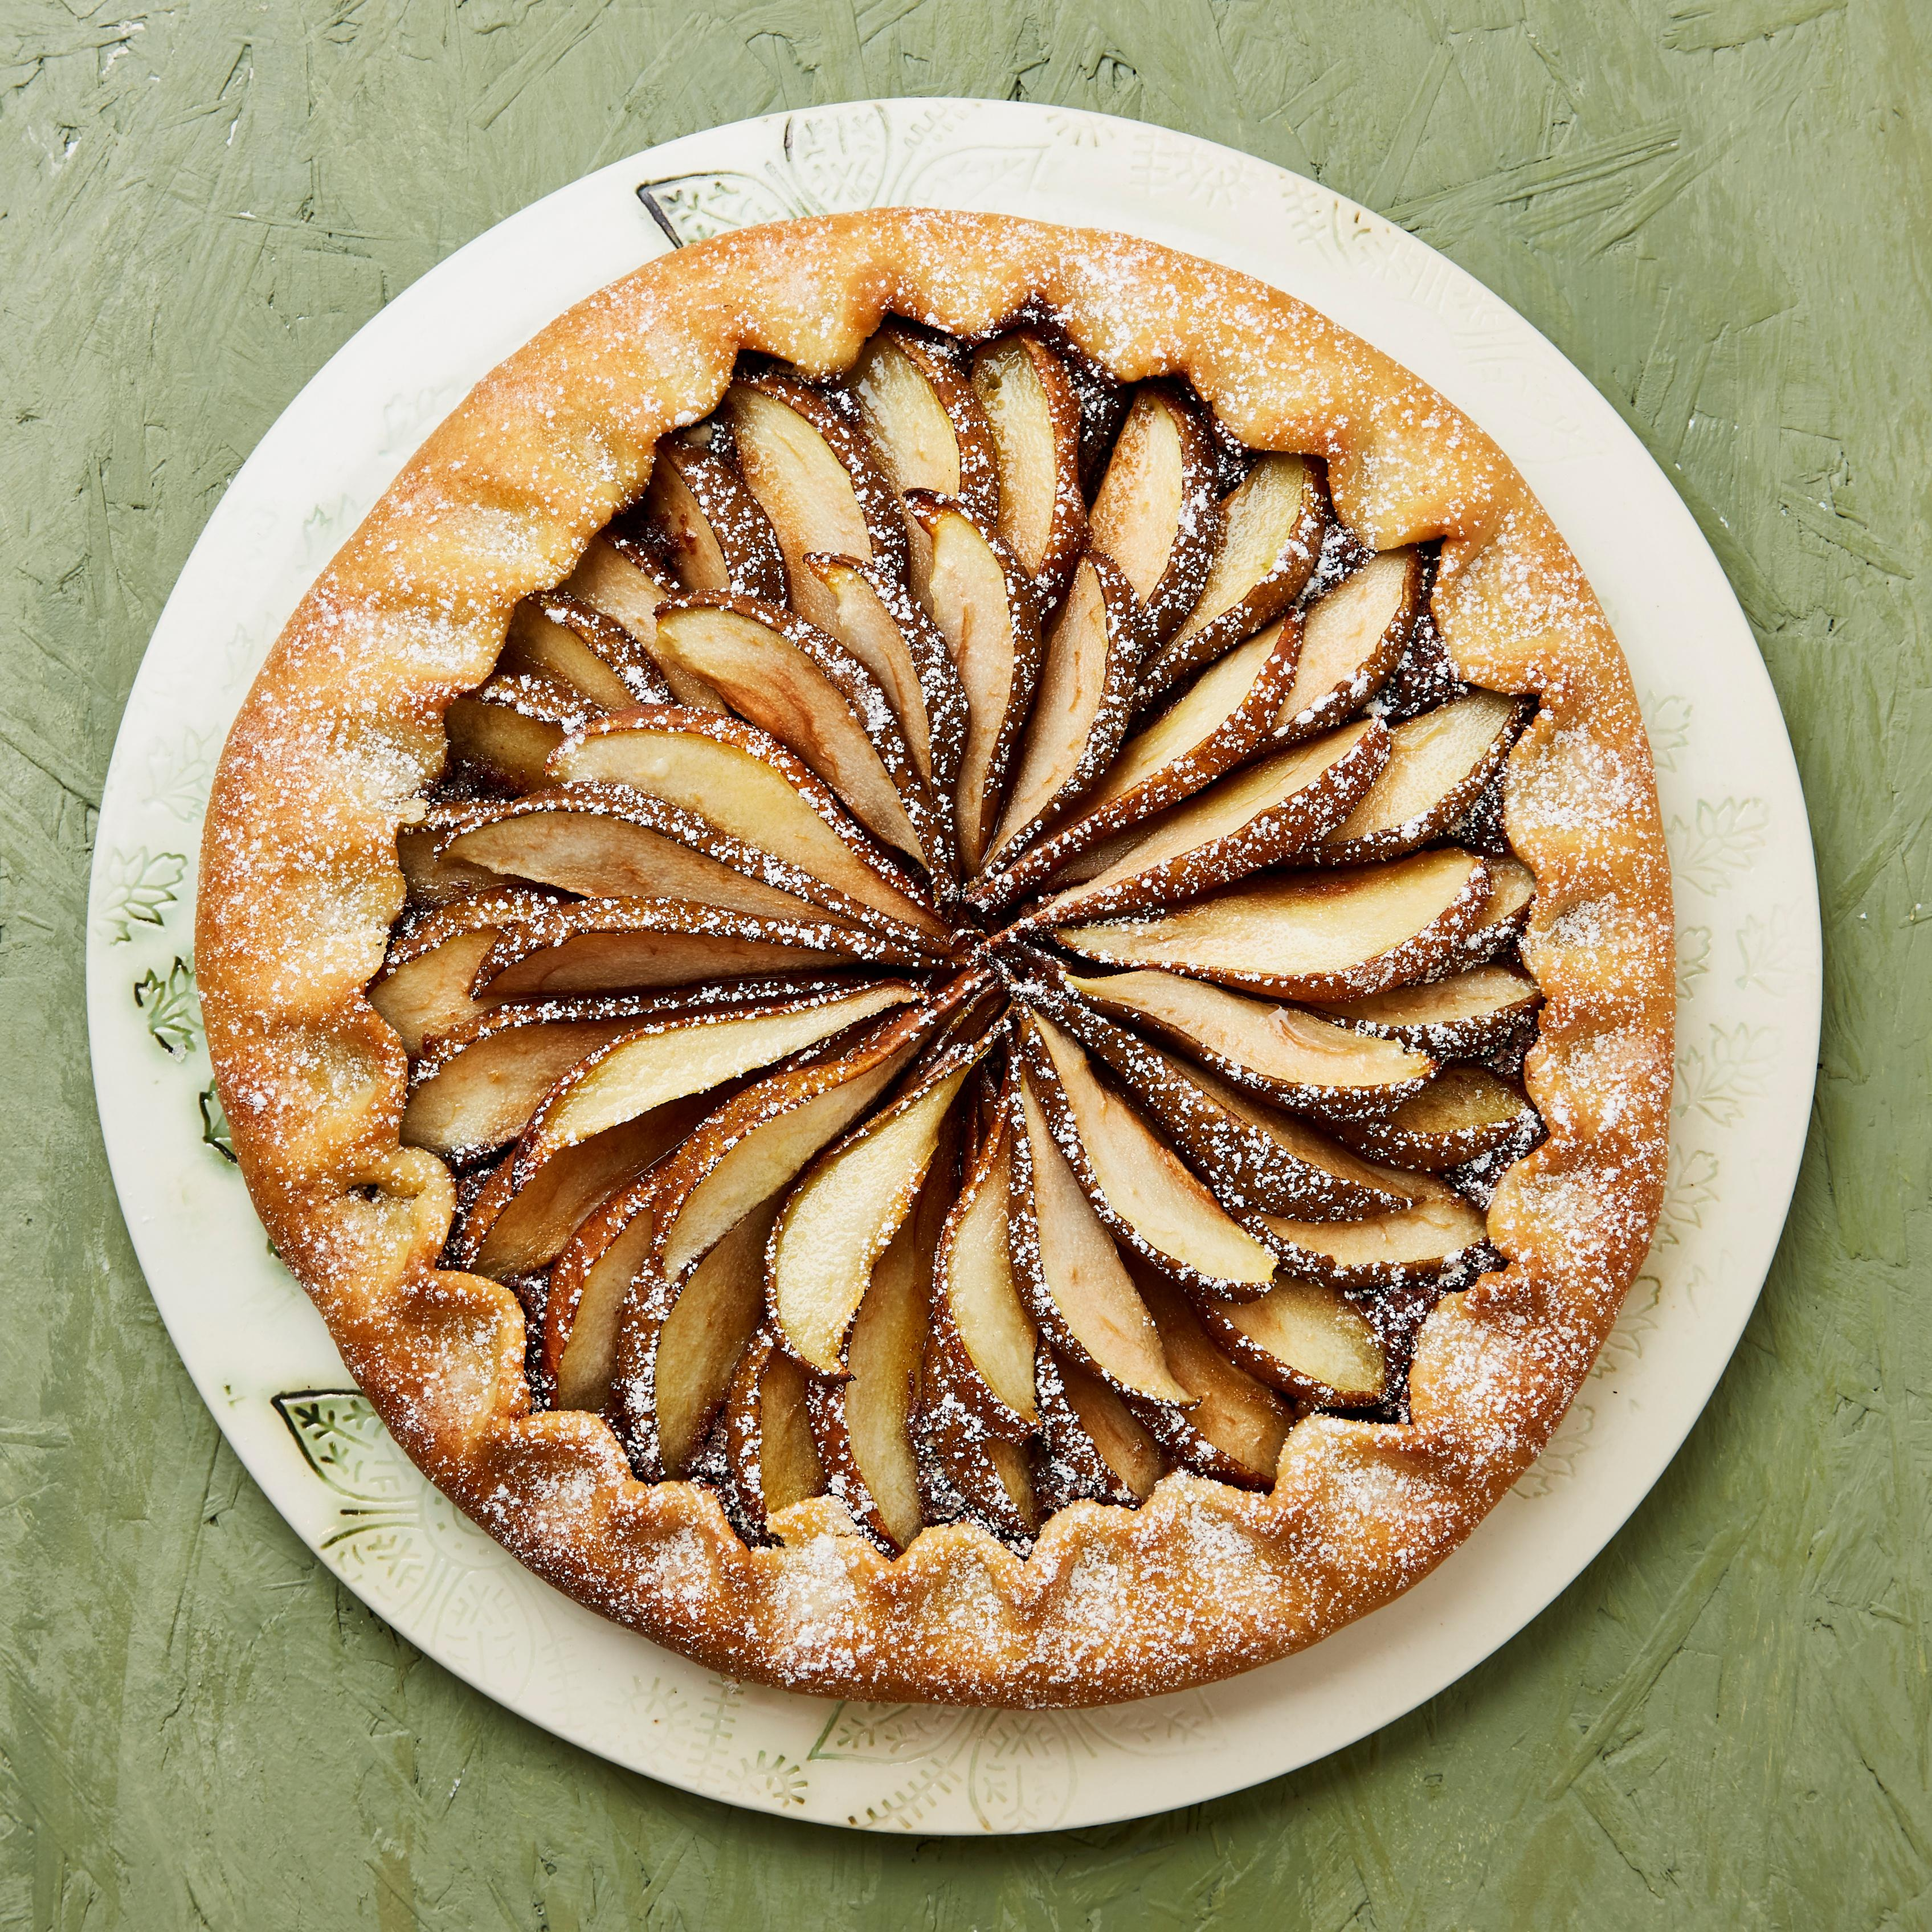 Meera Sodha's vegan recipe for pear, chocolate and almond galette